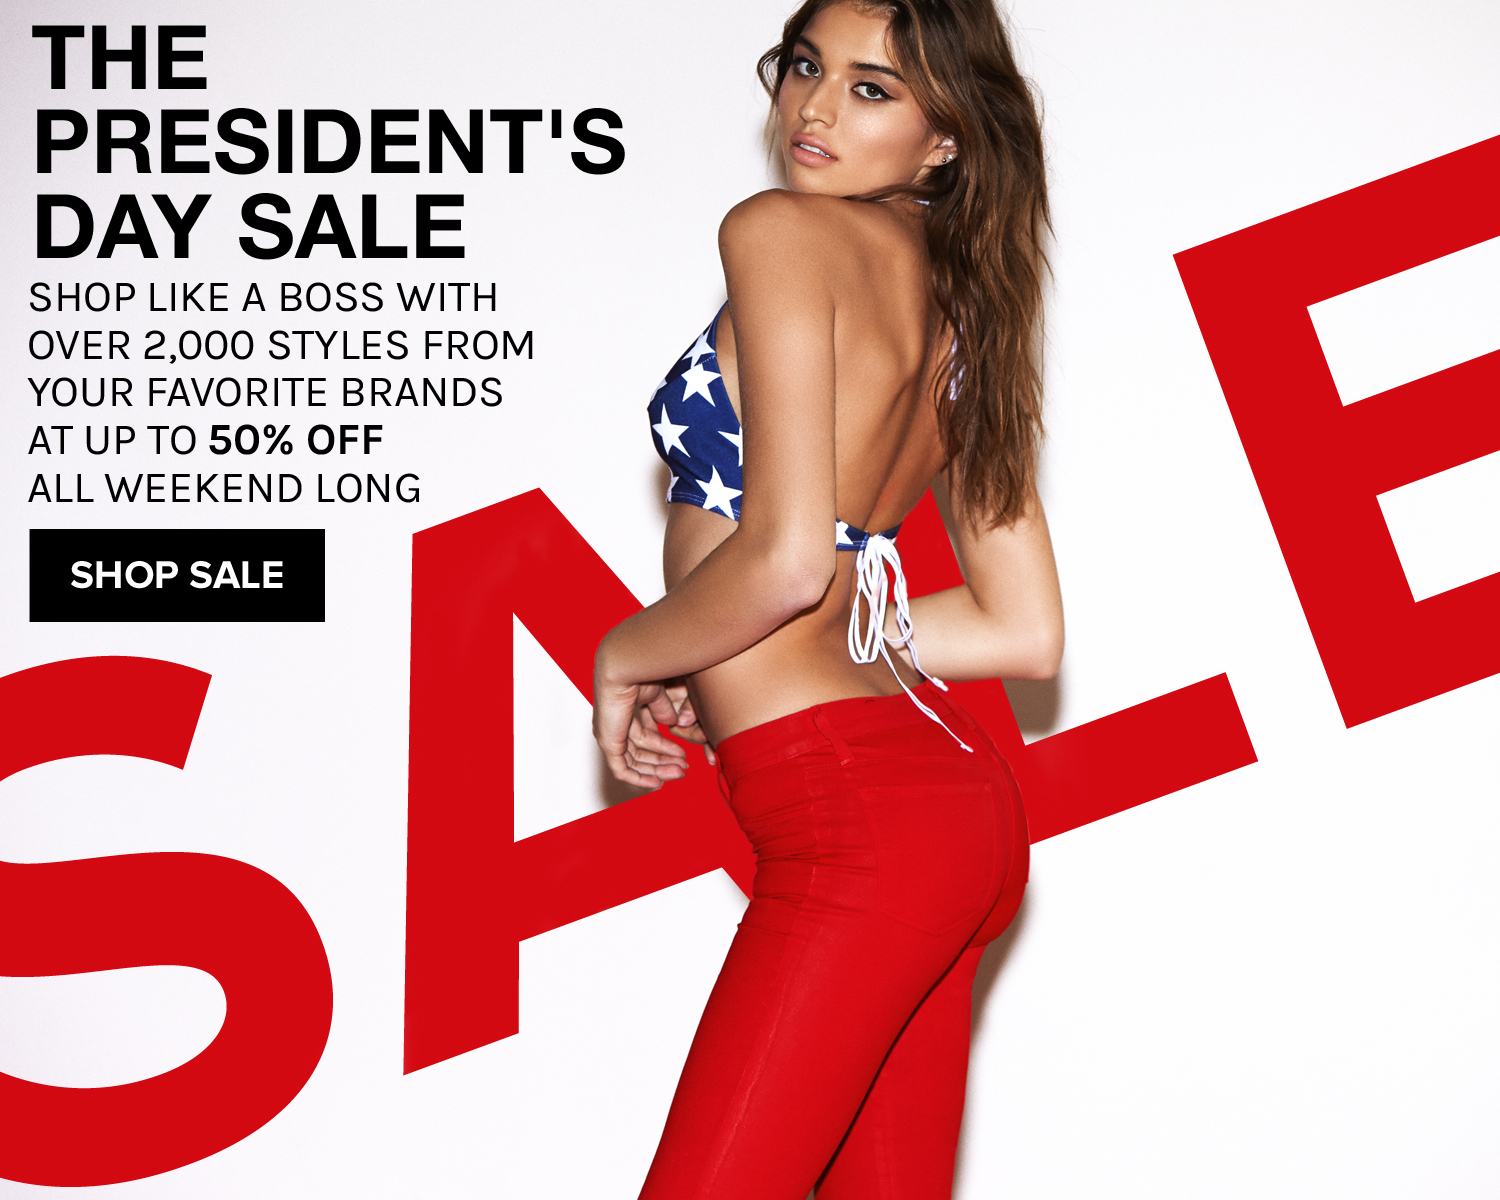 The President's Day Sale: Over 2,000 Styles from your favorite brands at up to 50% off all weekend long!